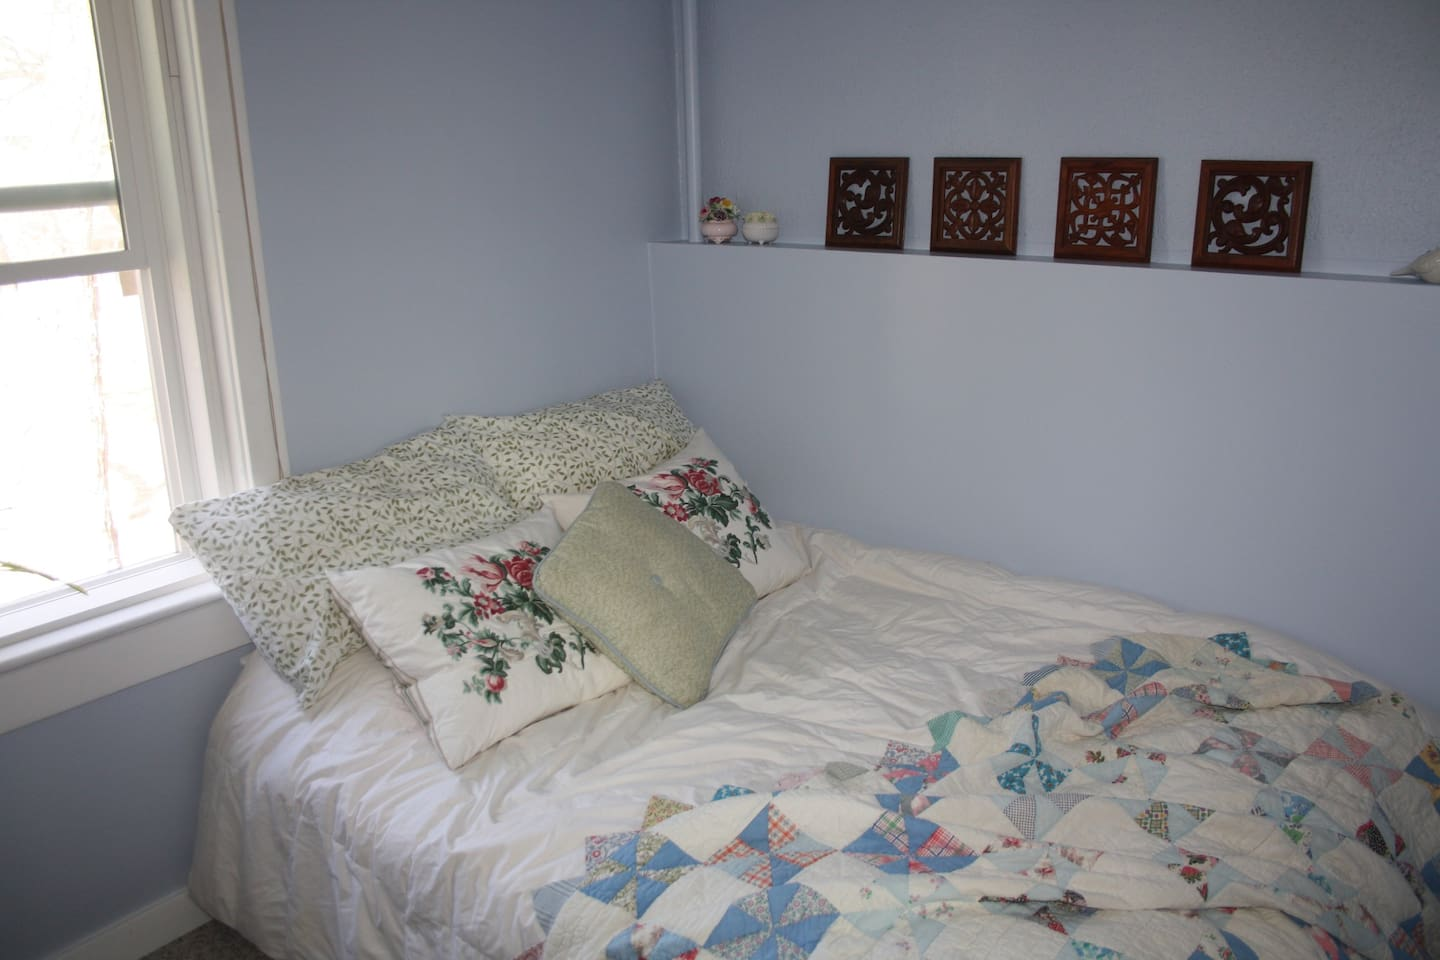 Check out our newly renovated airbnb room!